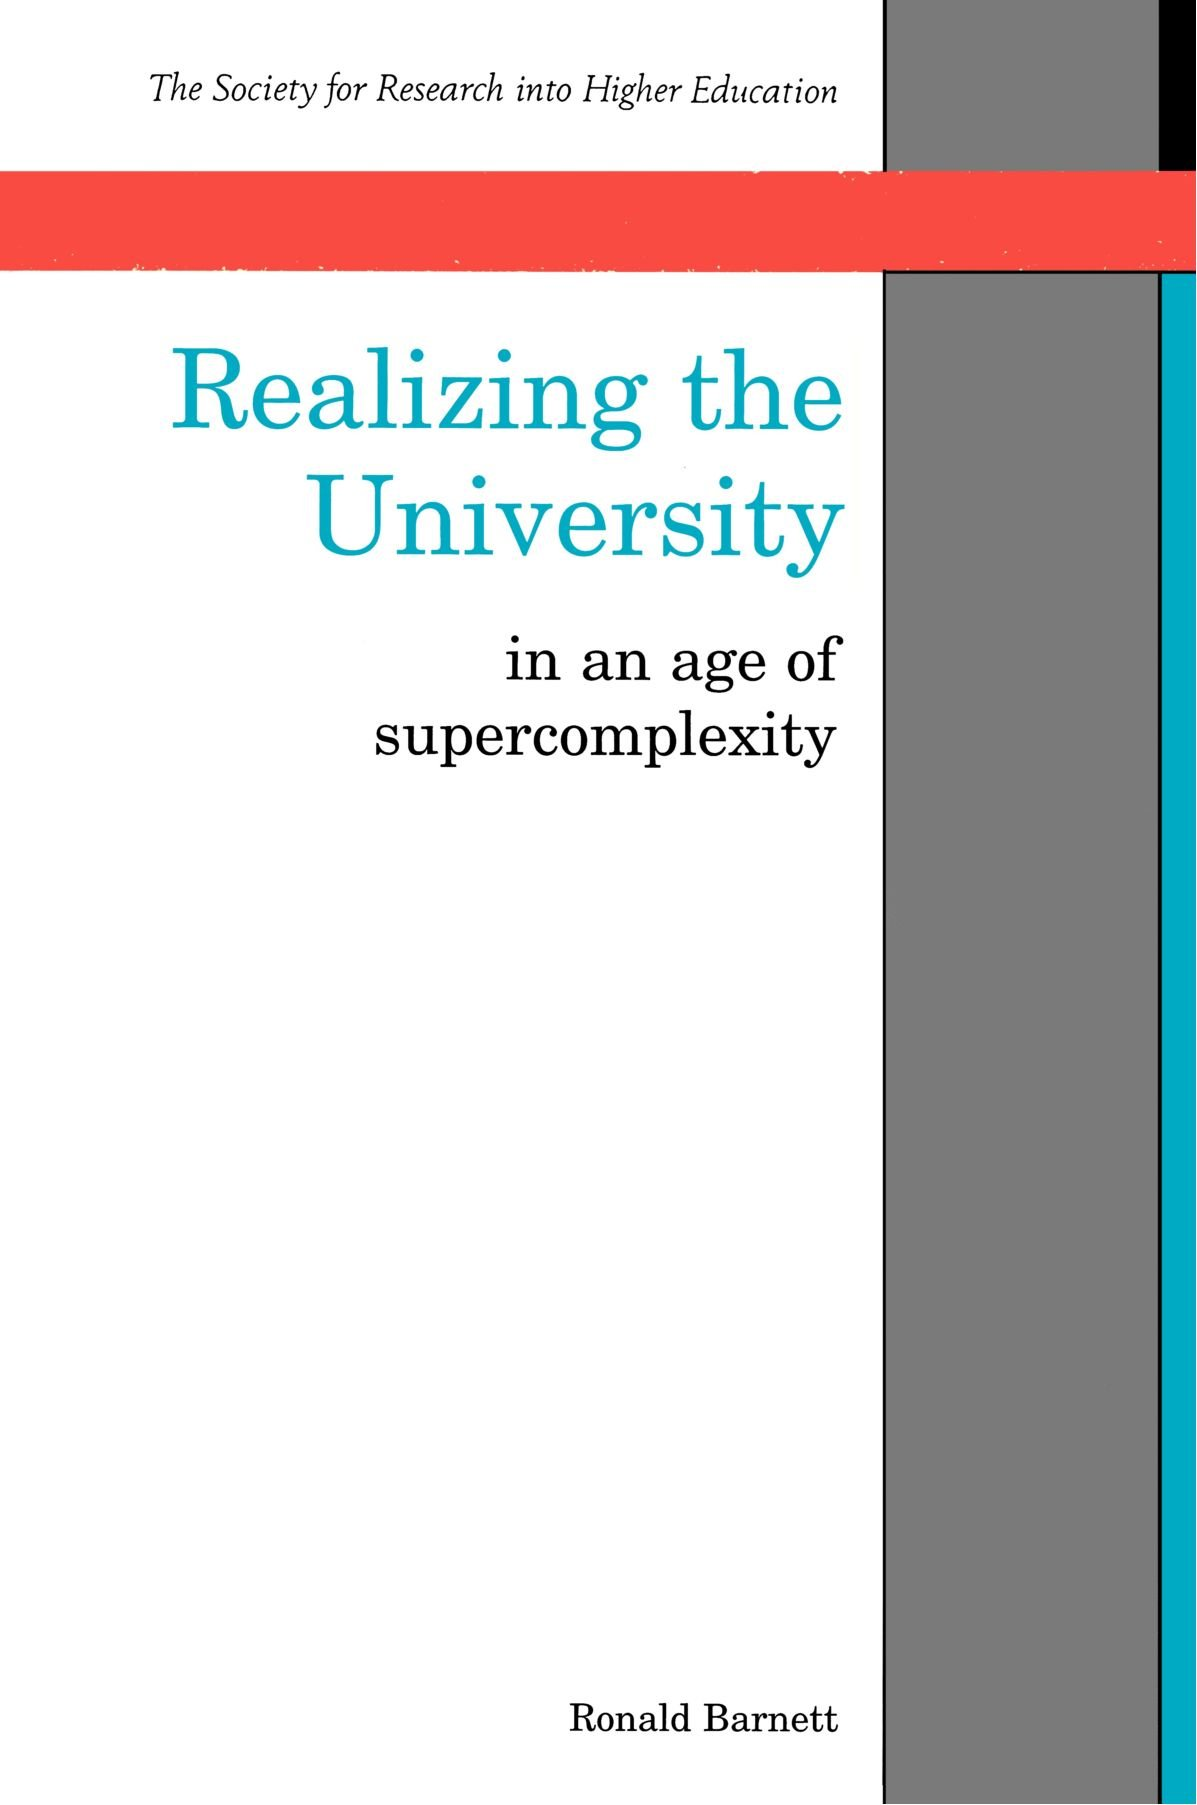 Realizing the University book cover